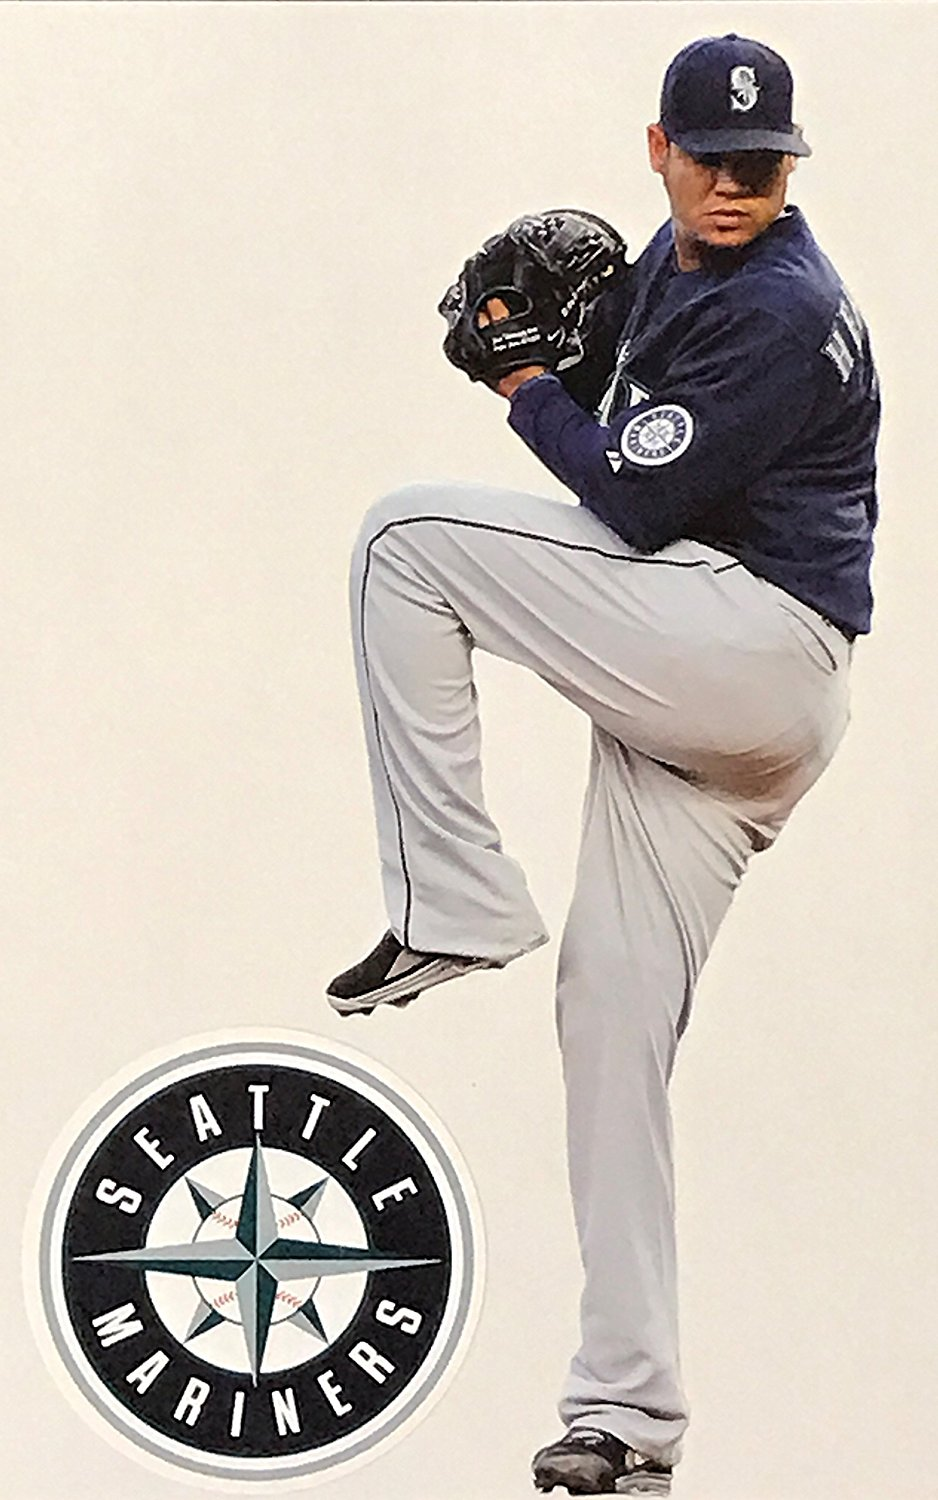 "Felix Hernandez Mini FATHEAD Seattle Mariners Official MLB Vinyl Wall Graphic 7"" INCH"